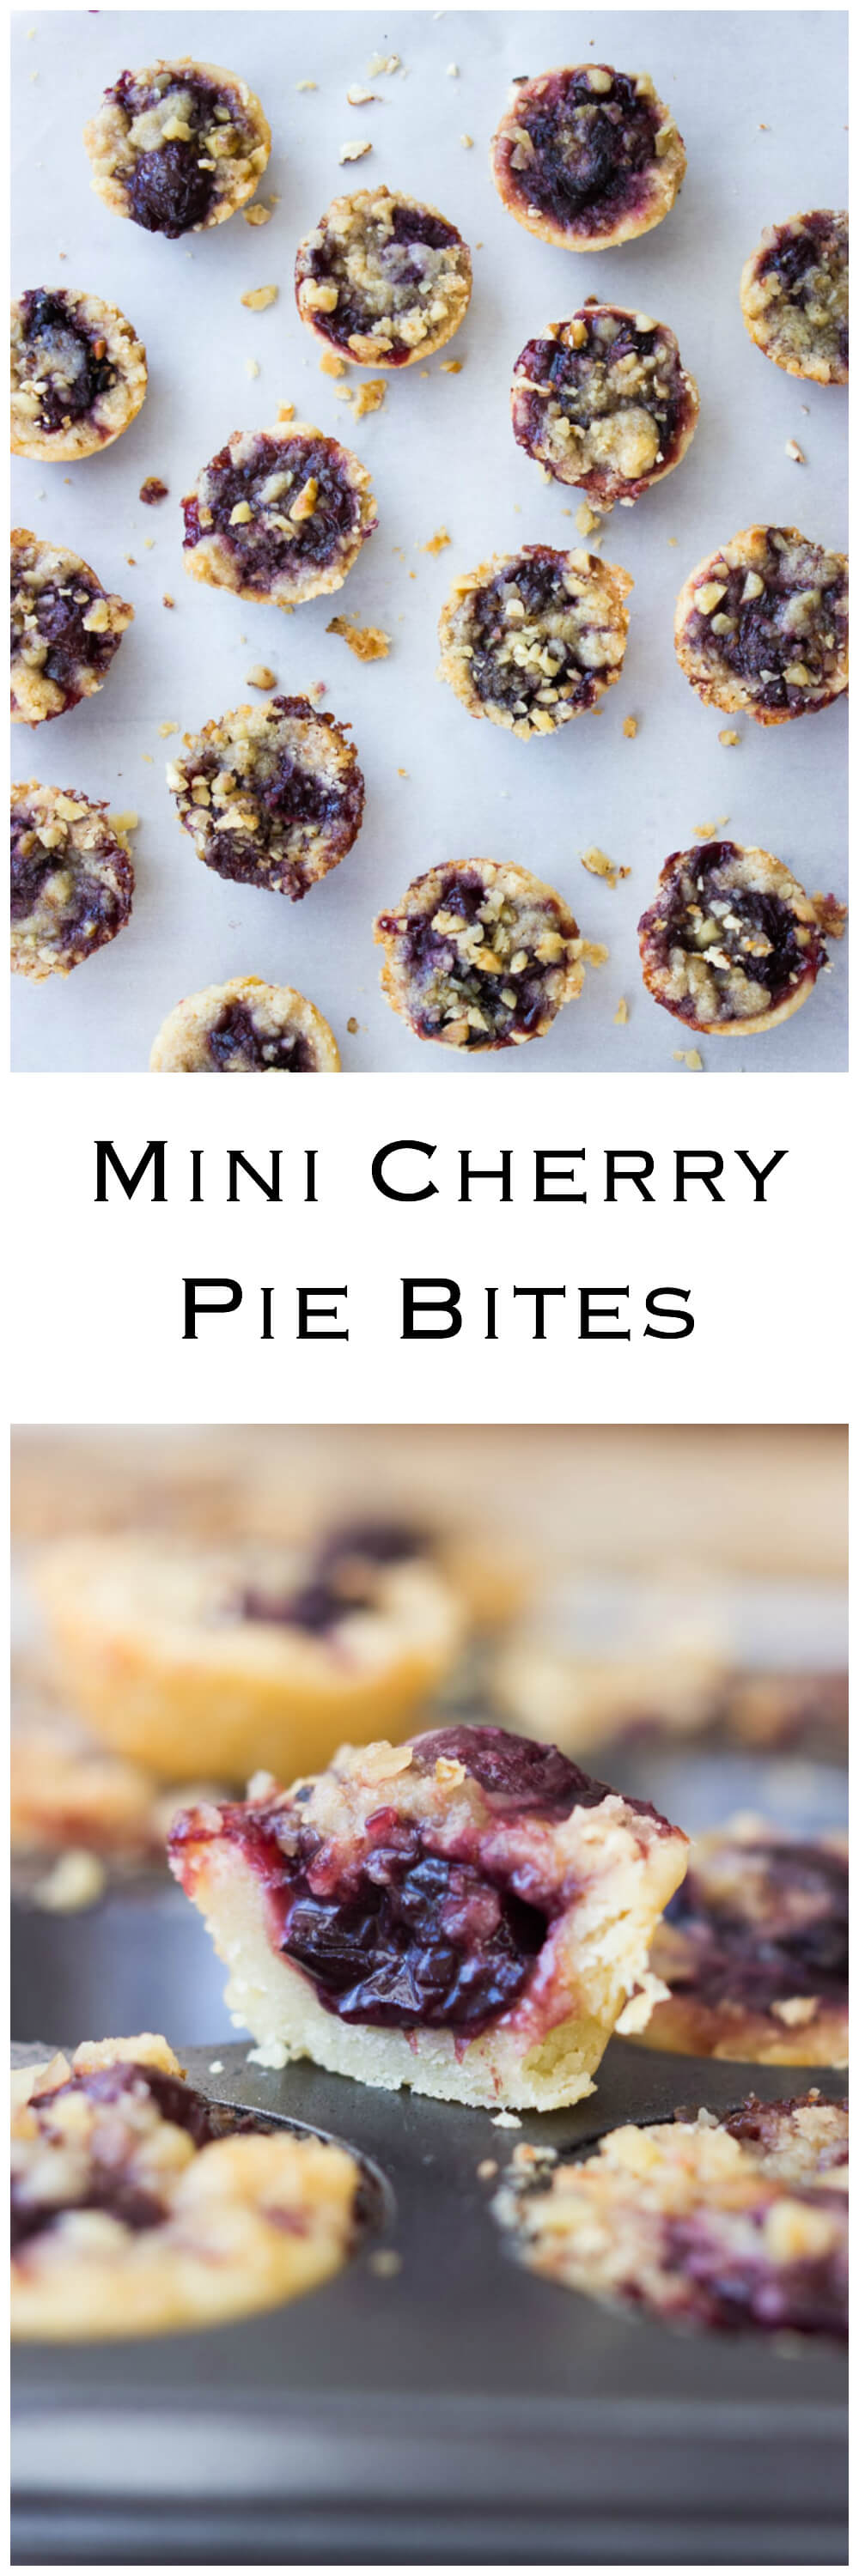 Mini Cherry Pie Bites - flaky buttery crust with cherry filling and walnut streusel. No special techniques required! So easy, so good. | littlebroken.com @littlebroken